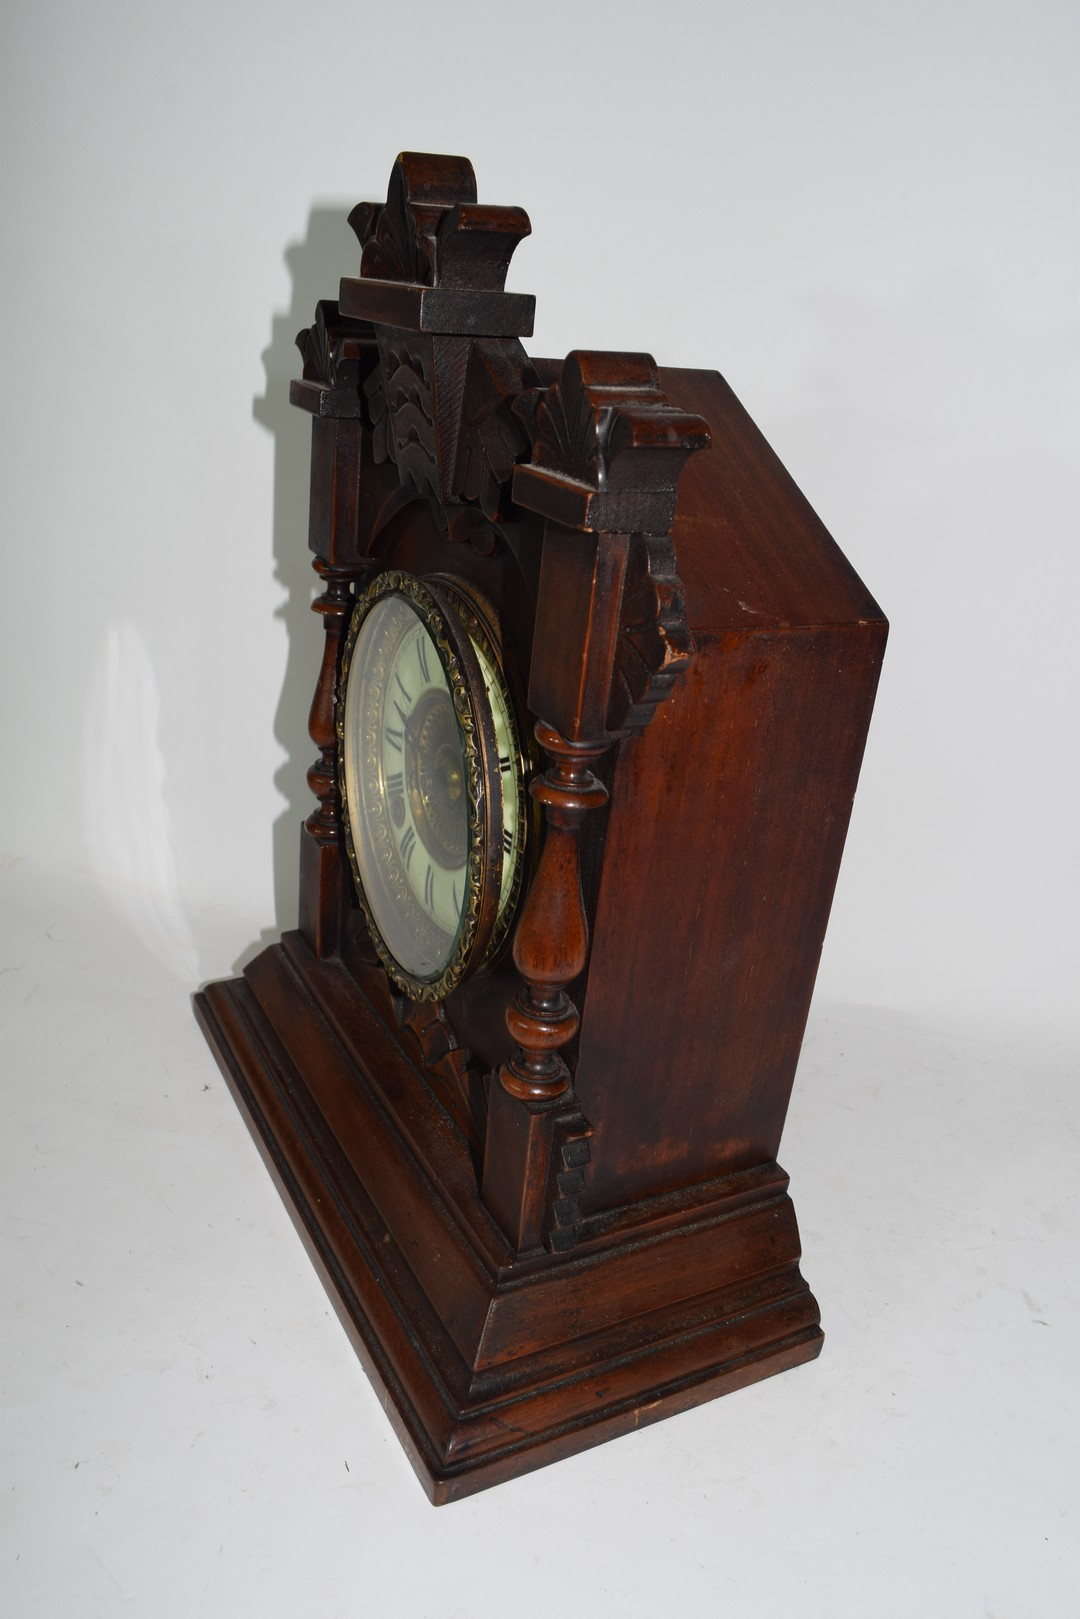 Late 19th century mantel clock by Ansona of New York - Image 3 of 6